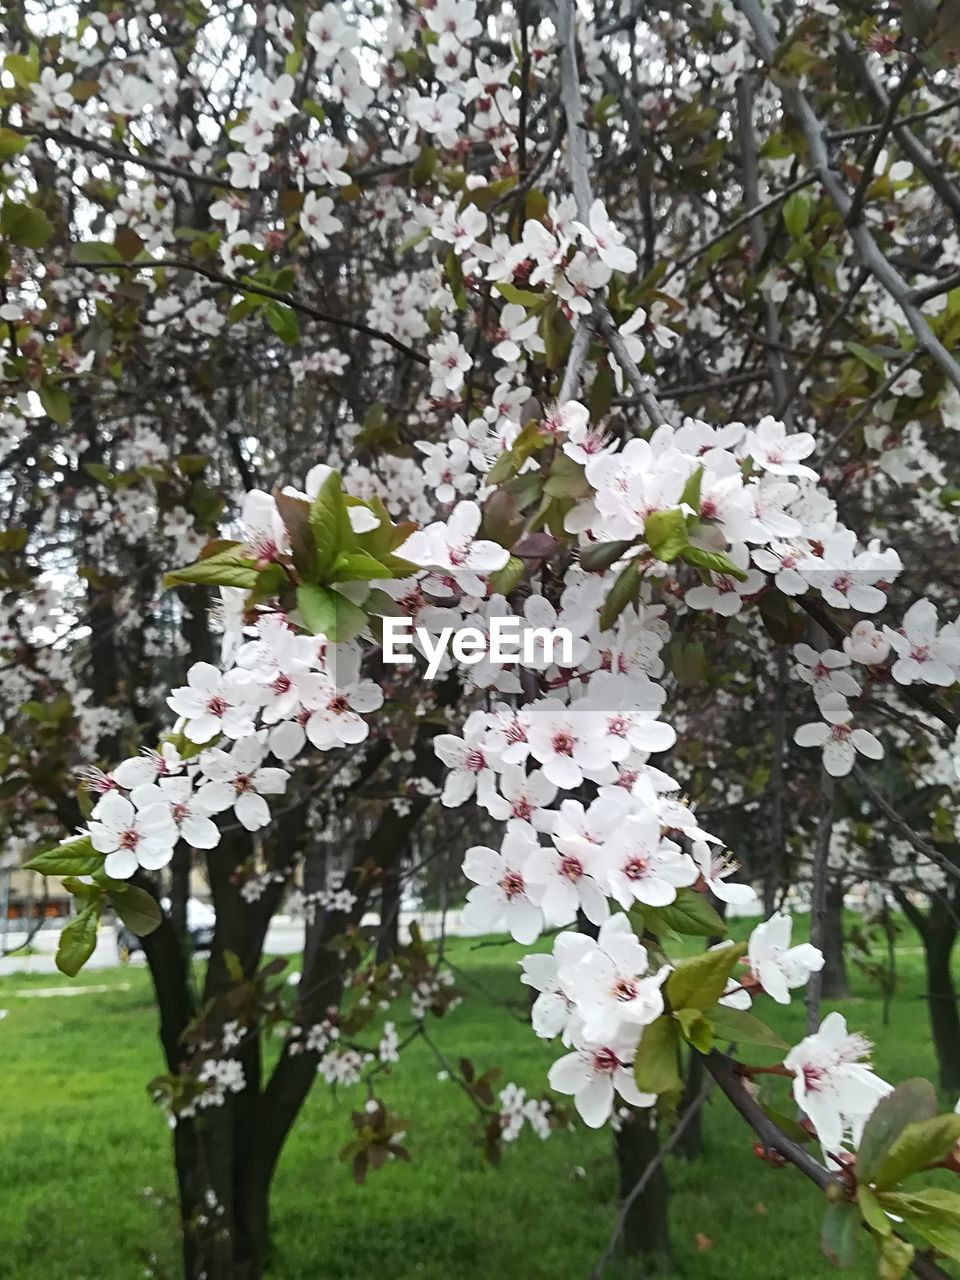 flowering plant, plant, flower, fragility, growth, vulnerability, freshness, beauty in nature, tree, blossom, day, white color, close-up, branch, springtime, nature, petal, focus on foreground, no people, botany, flower head, outdoors, cherry blossom, cherry tree, pollen, spring